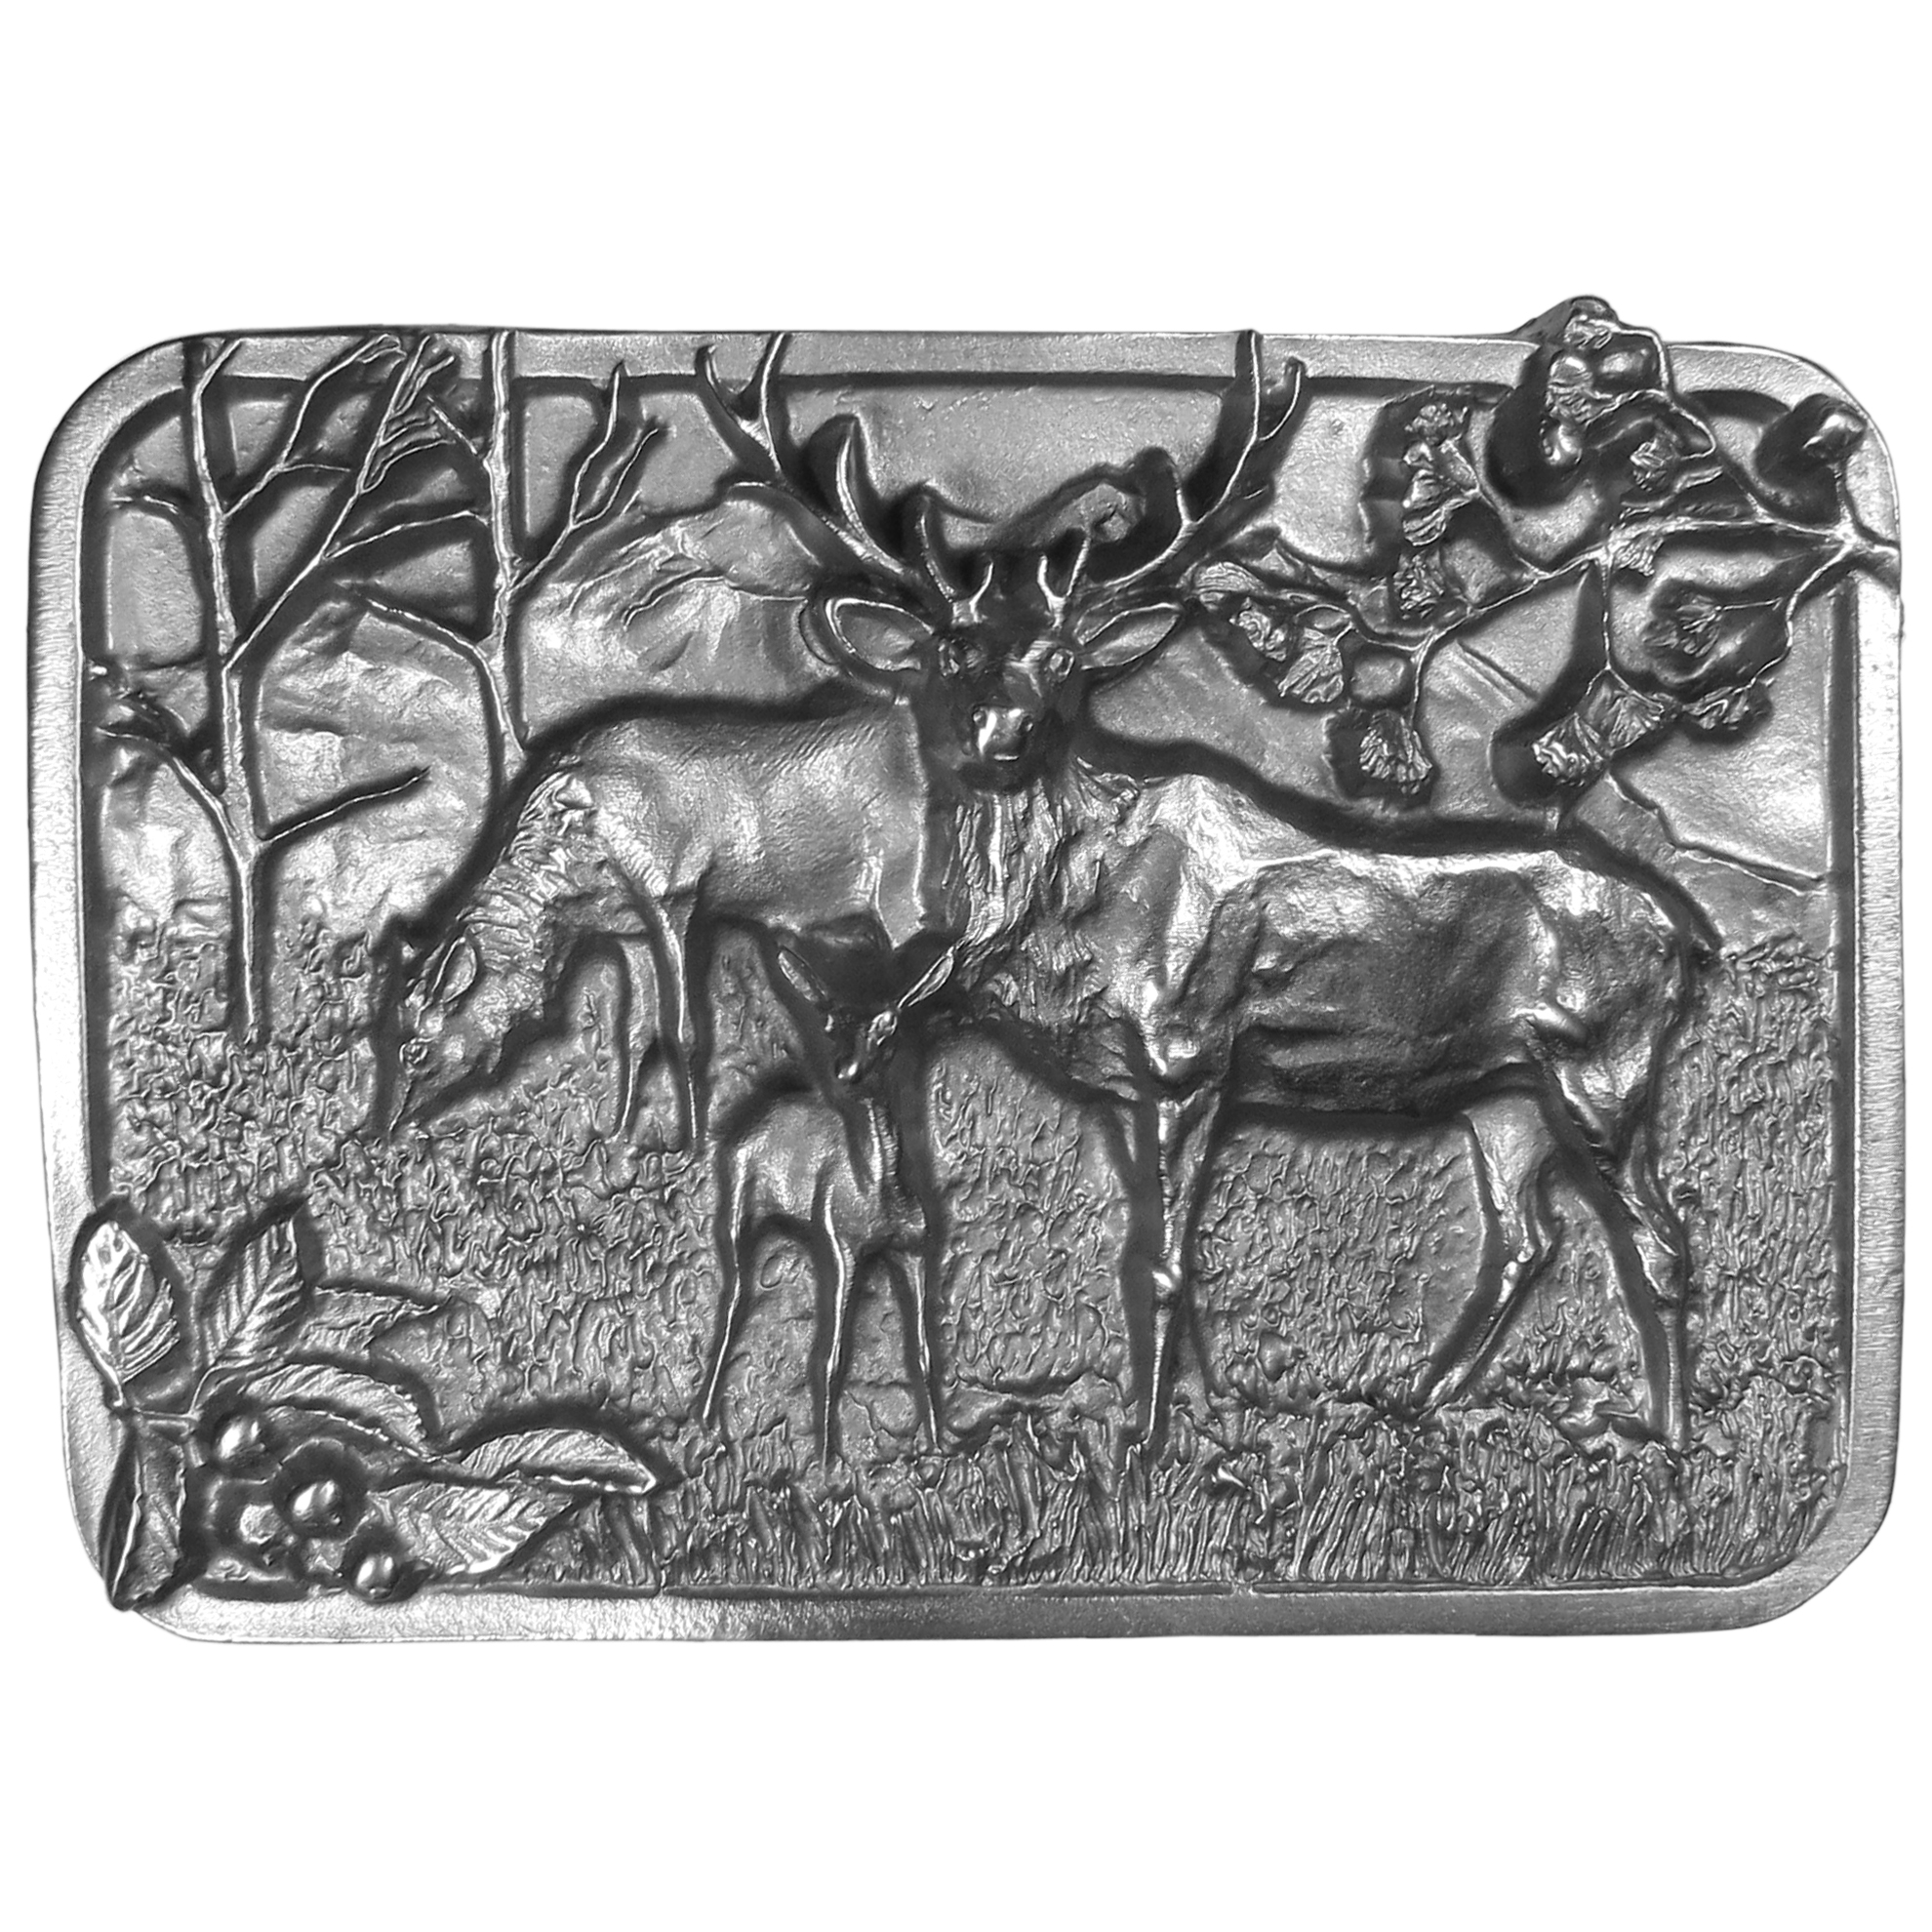 """Elk Antiqued Belt Buckle - """"A beautifully designed image of 3 elk, a bull, a cow and a calf, are the highlight of this antiqued buckle. Other images include the mountains, field, trees, flowers and berries. This exquisite carved buckle is made of fully cast metal with a standard bale that fits up to 2"""""""" belts. Siskiyou's unique buckle designs often become collector's items and are unequaled in craftsmanship. Made in the USA."""""""